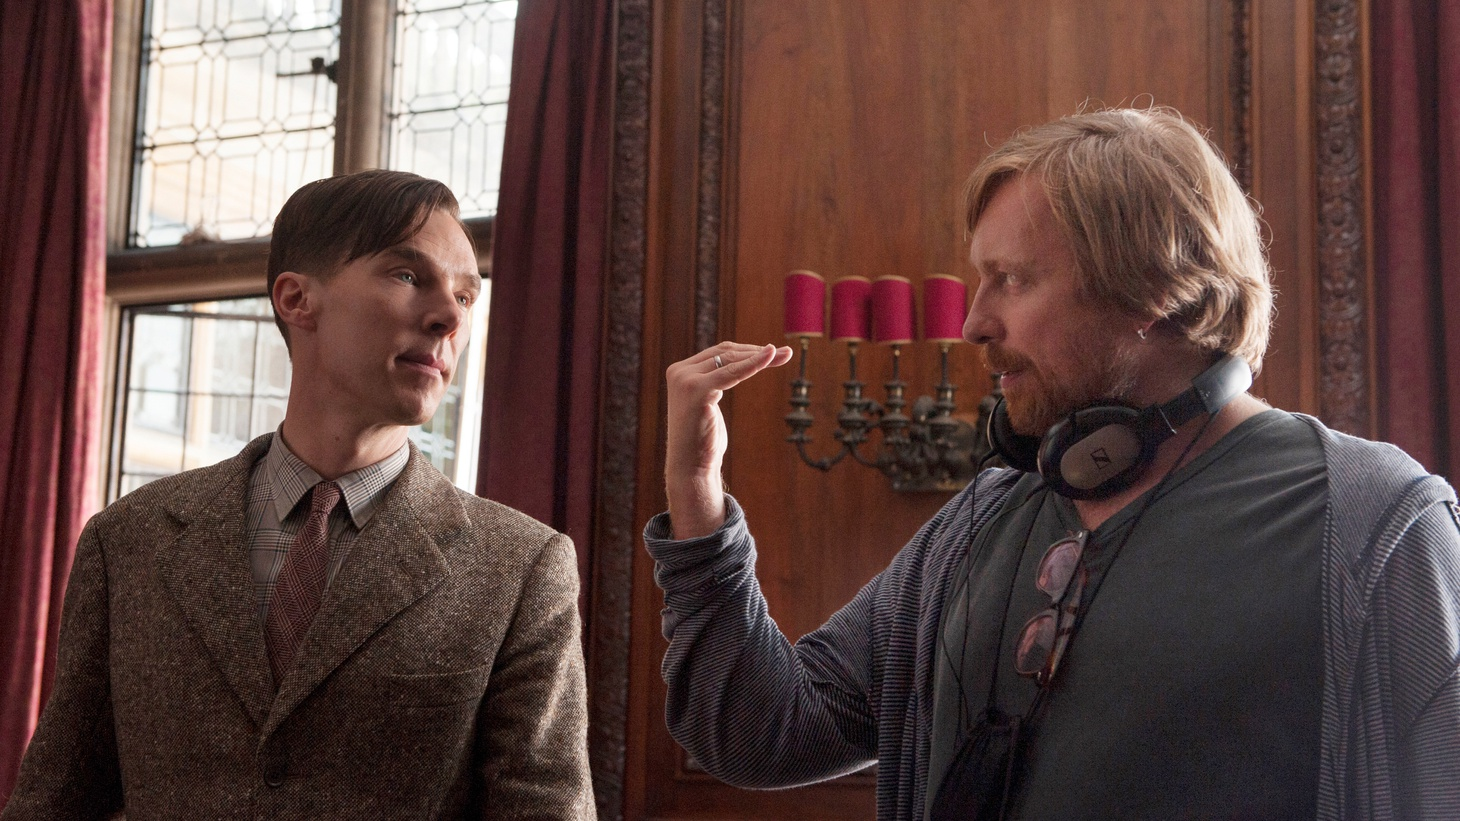 Director Morten Tyldum and writer and producer Graham Moore tell Kim Masters how the journey of making their Oscar-nominated film about codebreaker Alan Turing started years ago at a fateful cocktail party.